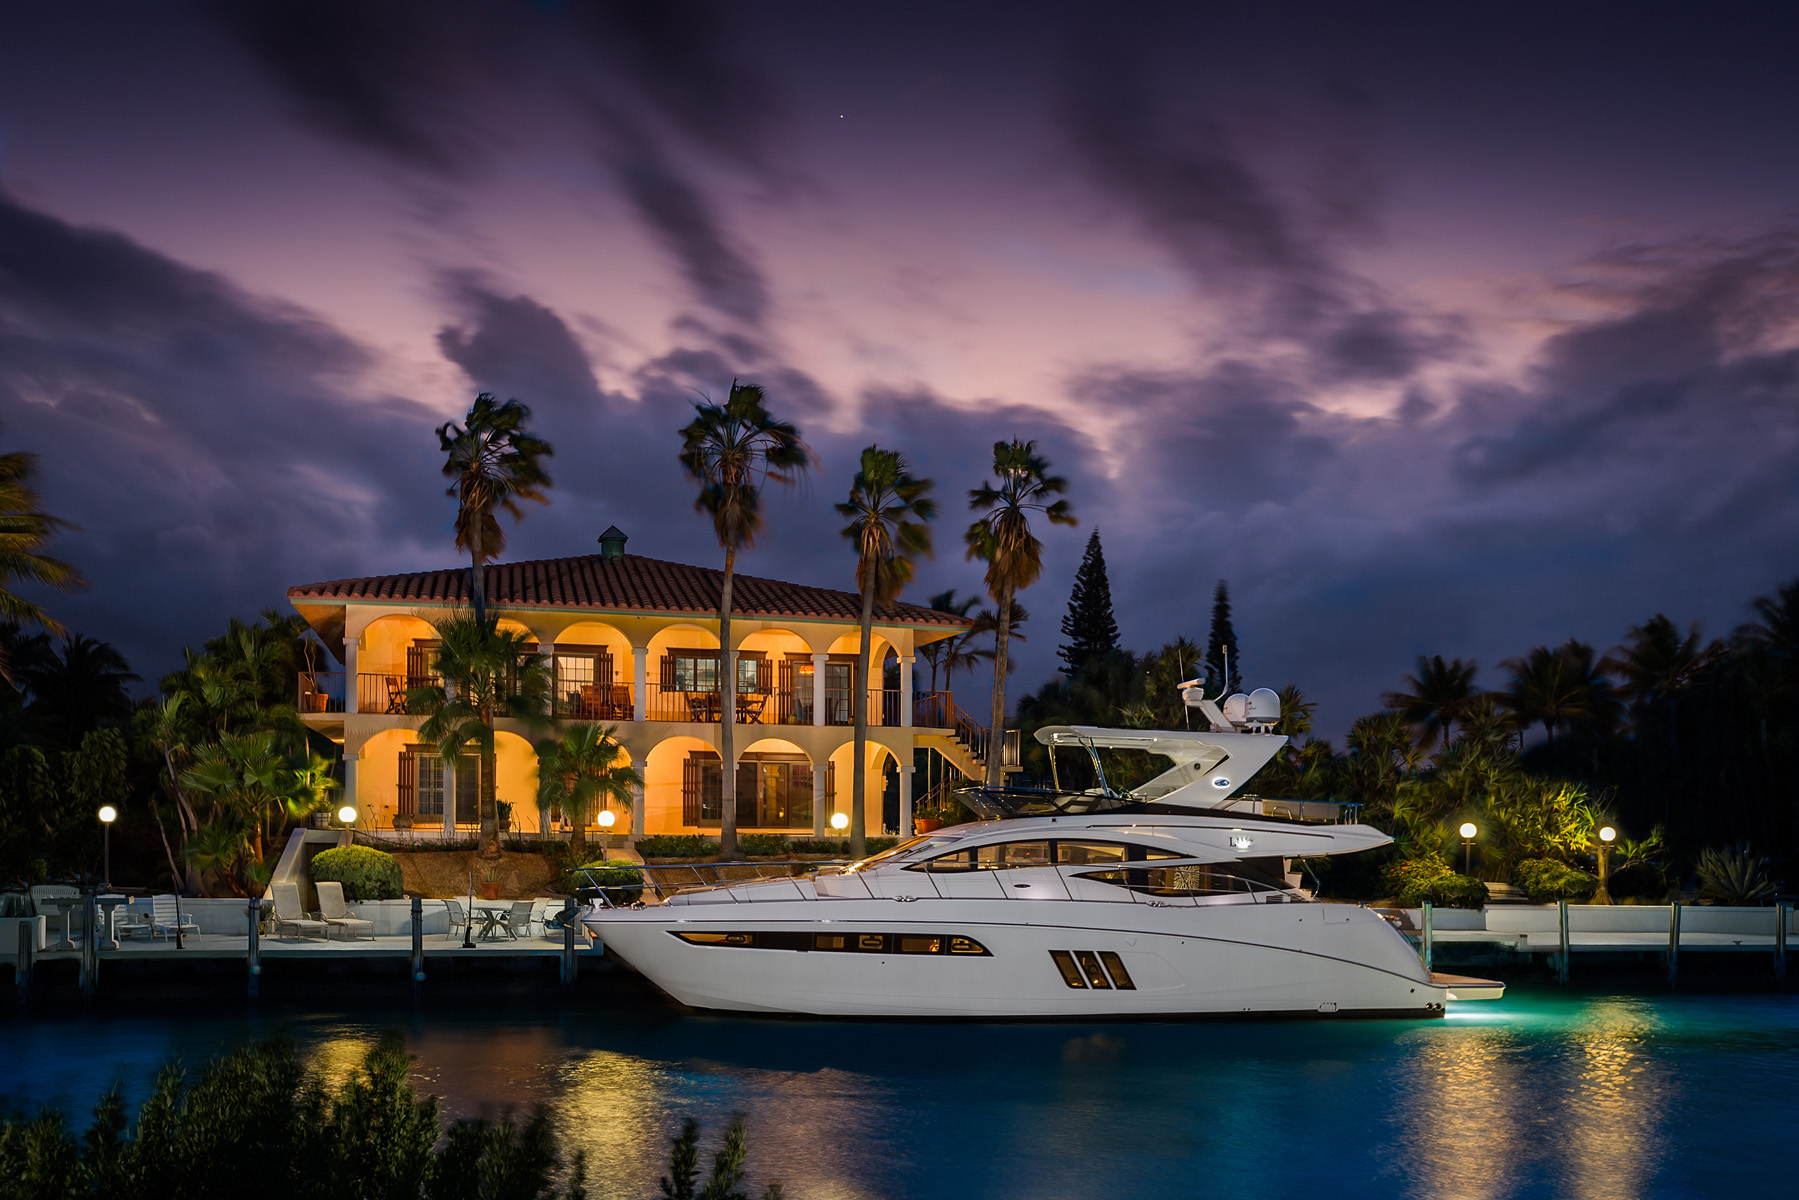 Yacht Boating Marine Photographer Richard Steinberger